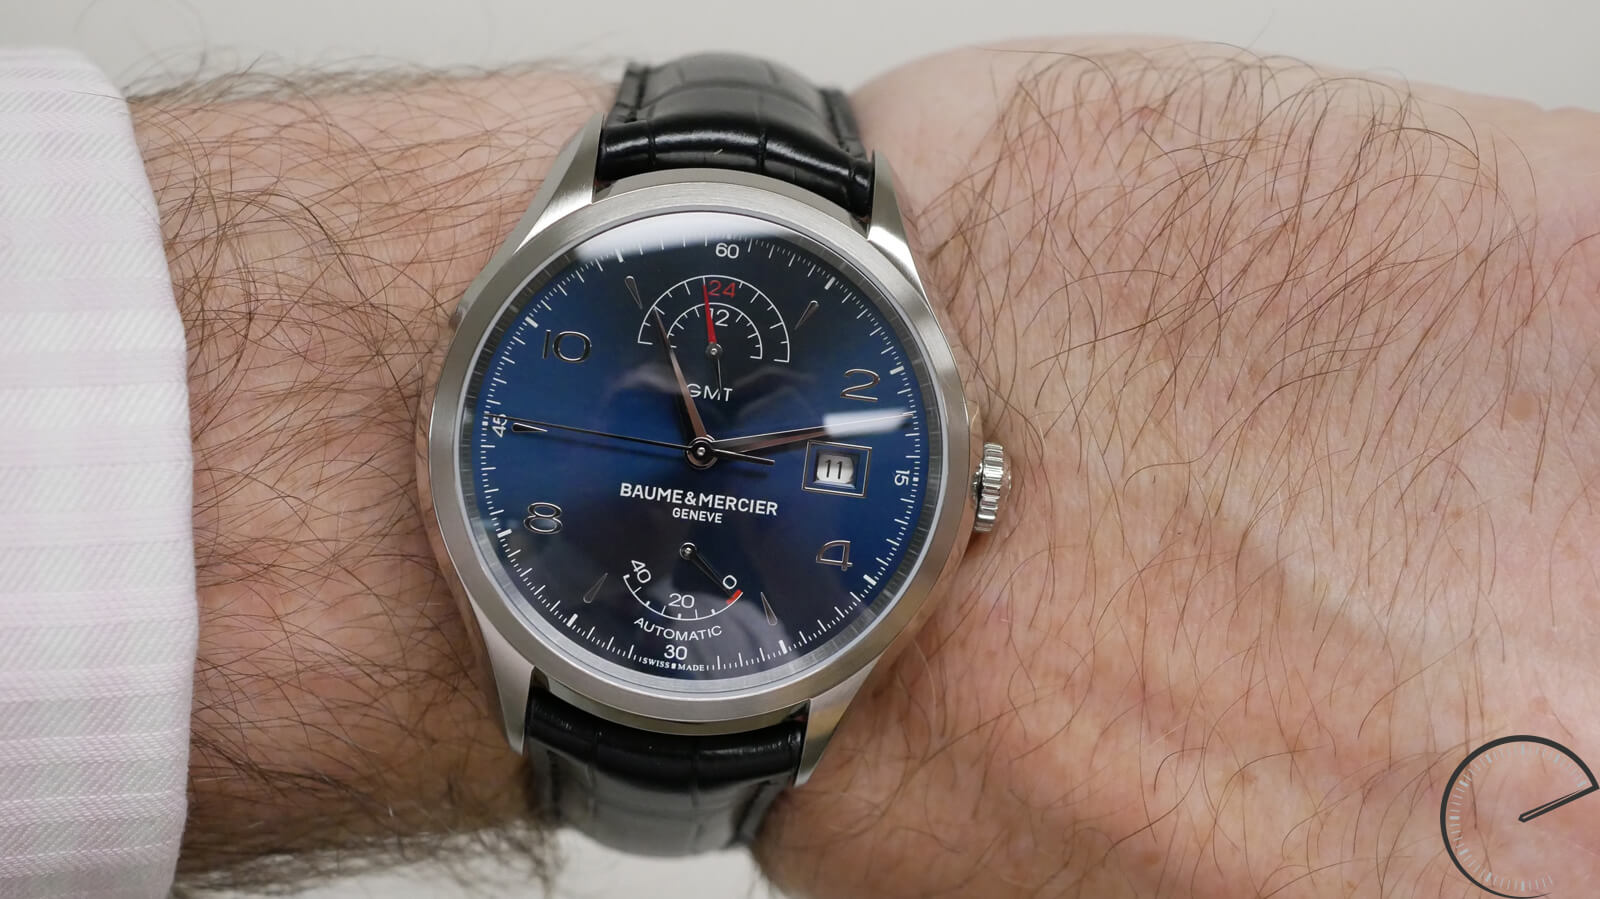 afc12e0bc6b Baume et Mercier GMT Power Reserve - affordable timepiece with blue sunray  dial